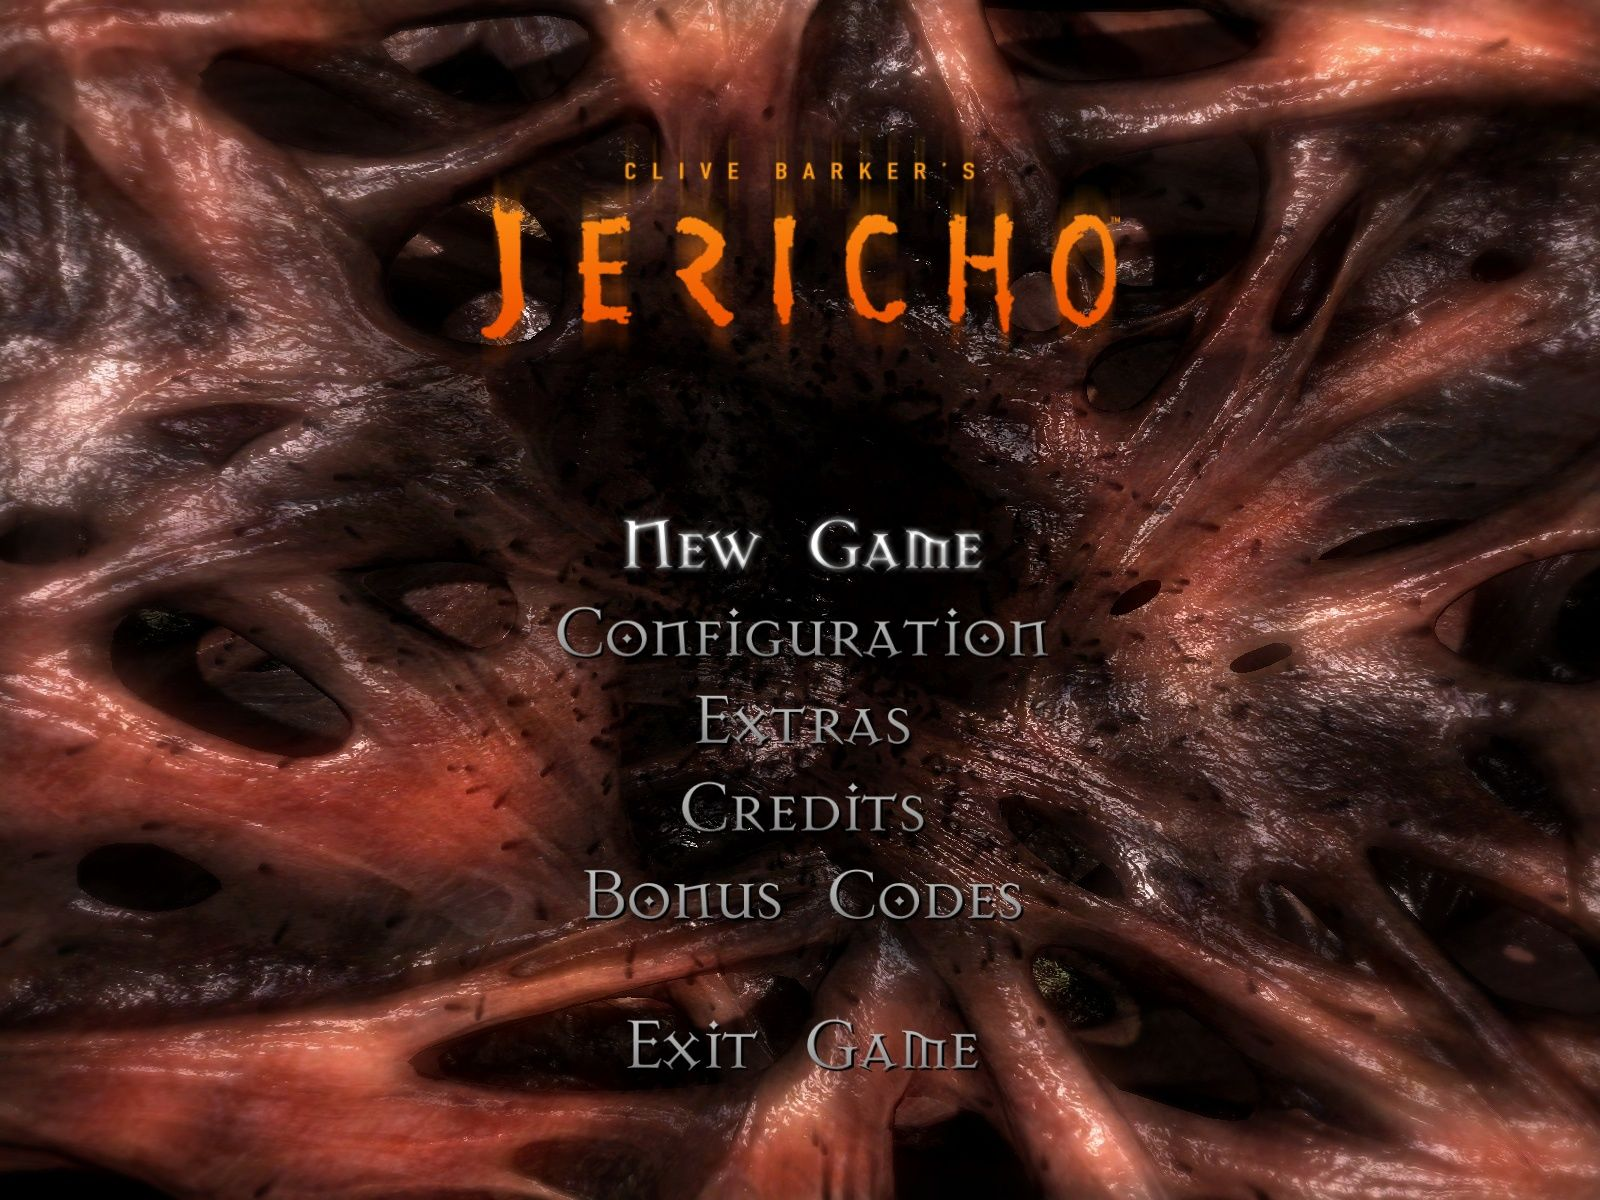 258076-clive-barker-s-jericho-windows-screenshot-main-menu